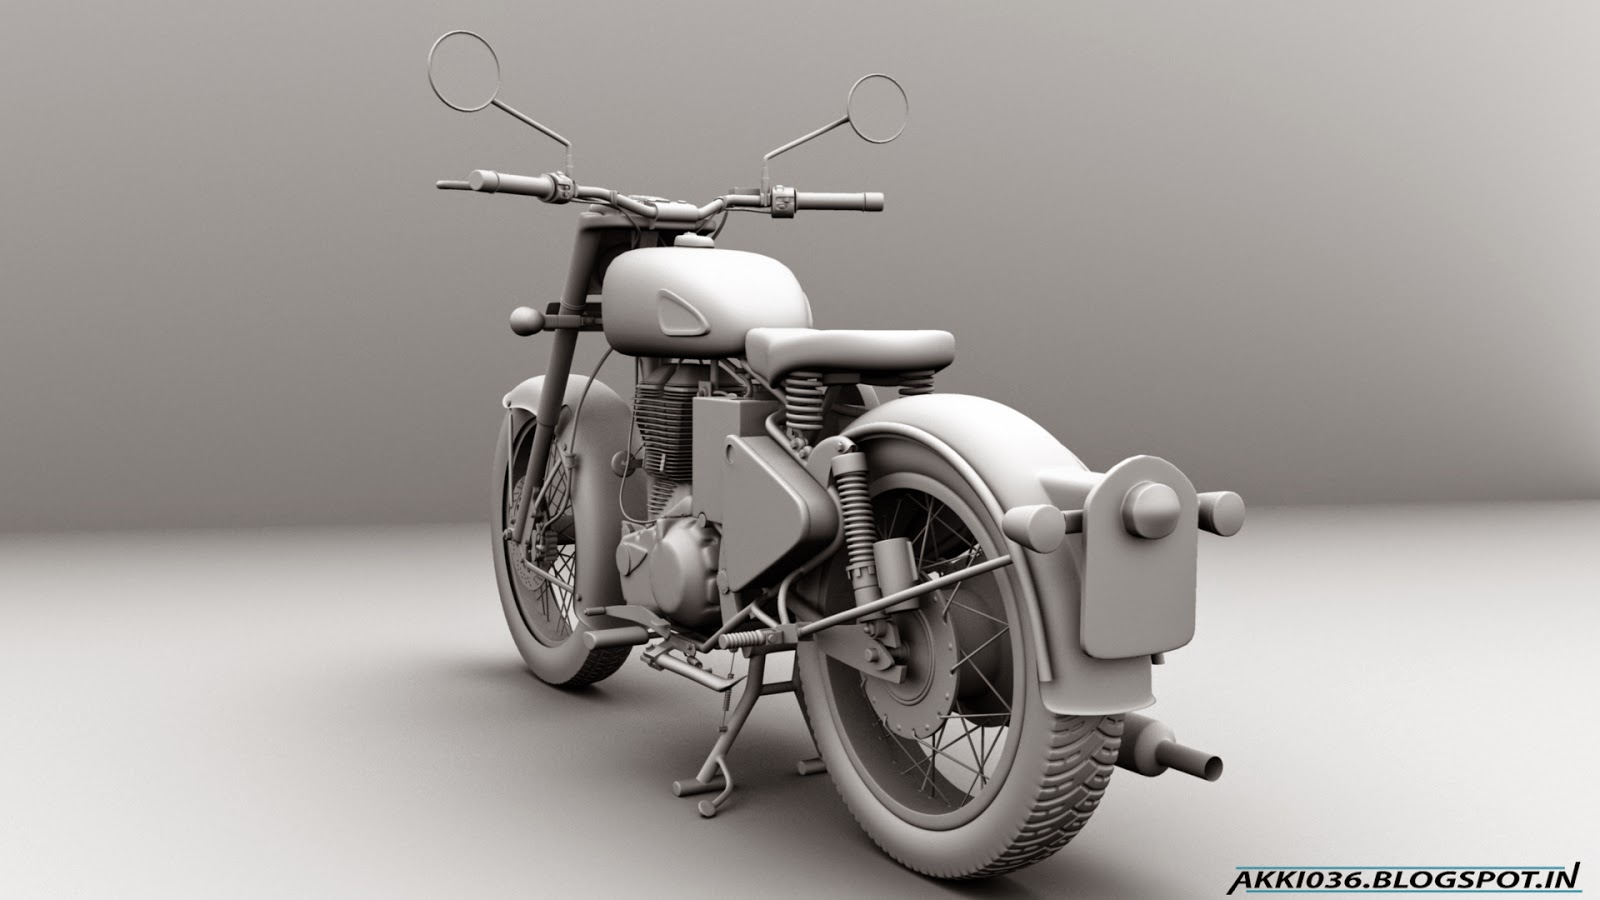 3d models in autodesk maya 3d royal enfield motorcycle for 3d model viewer